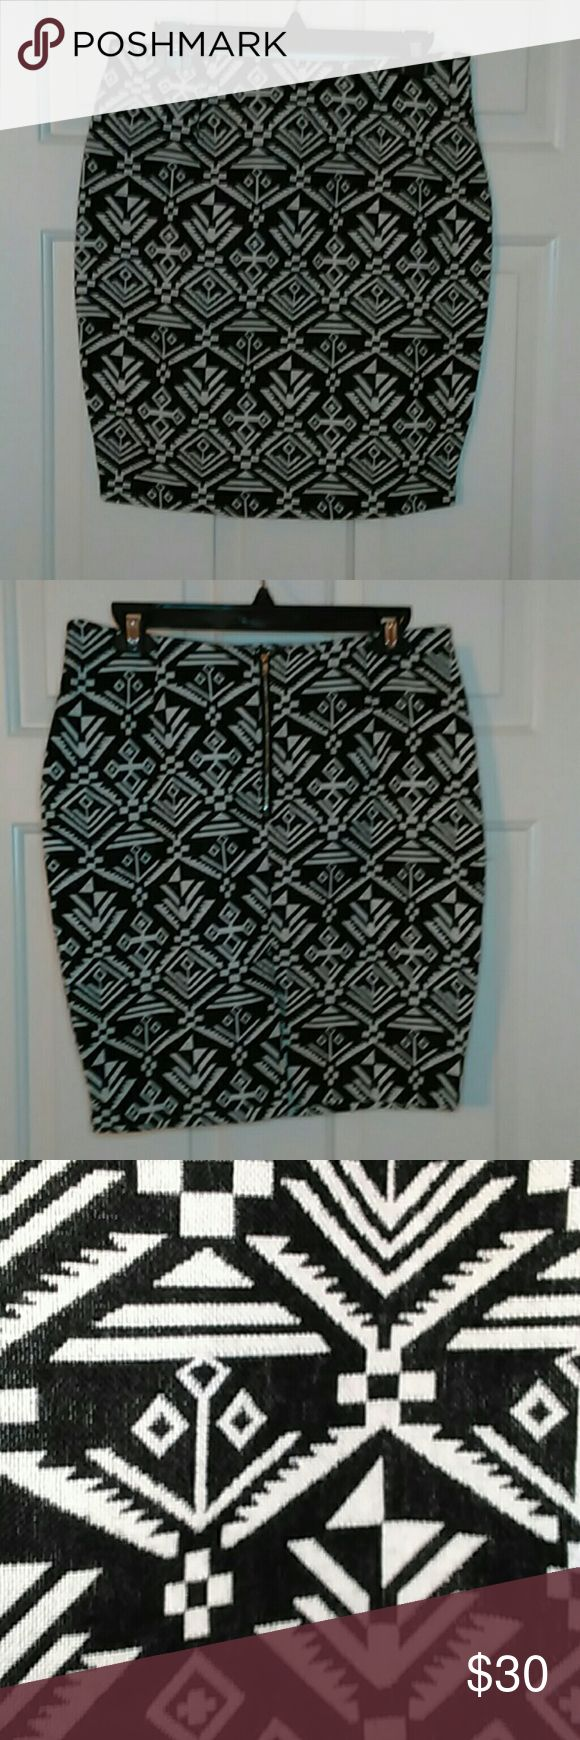 Aztec print skirt with back slit Black and ecru Aztec print mini skirt with back zipper and slit made in a cotton/spandex split for comfort. Skirts Mini